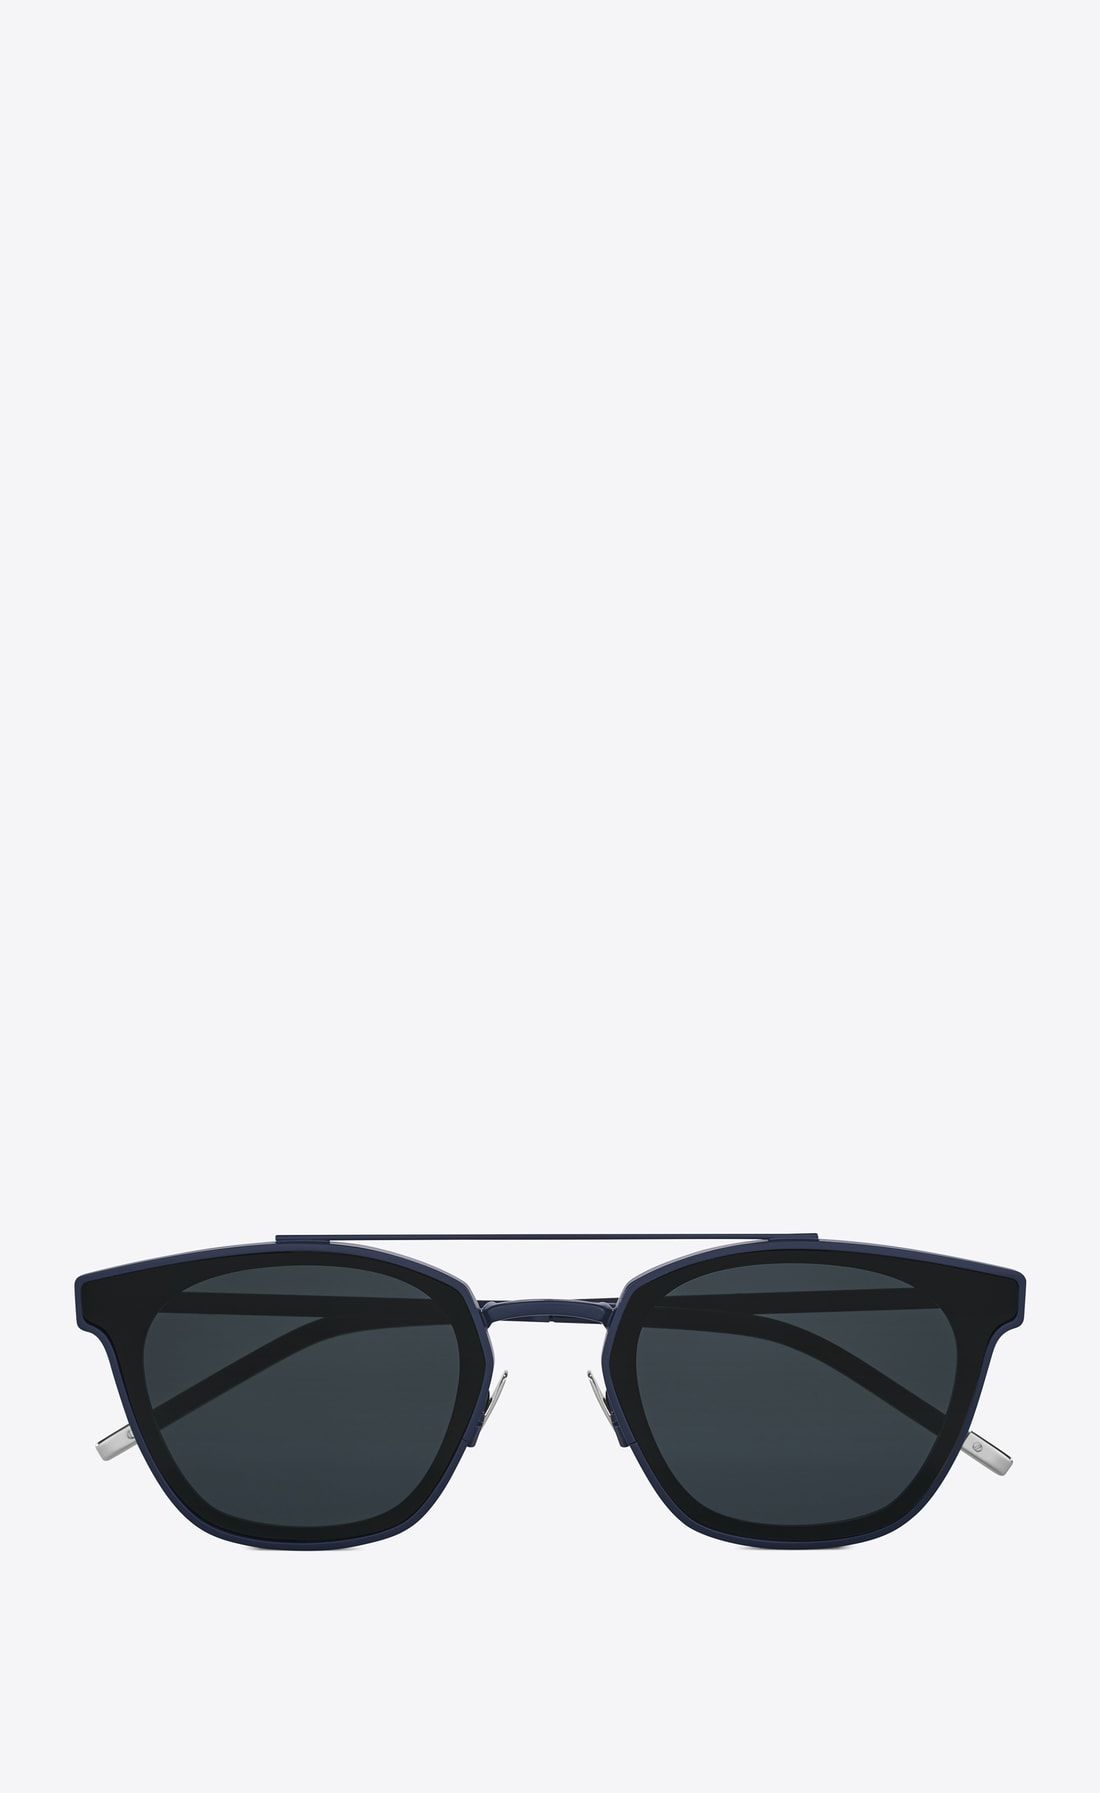 2183e599796 classic 28 sunglasses in blue metal and black acetate with blue lenses ,  Front view